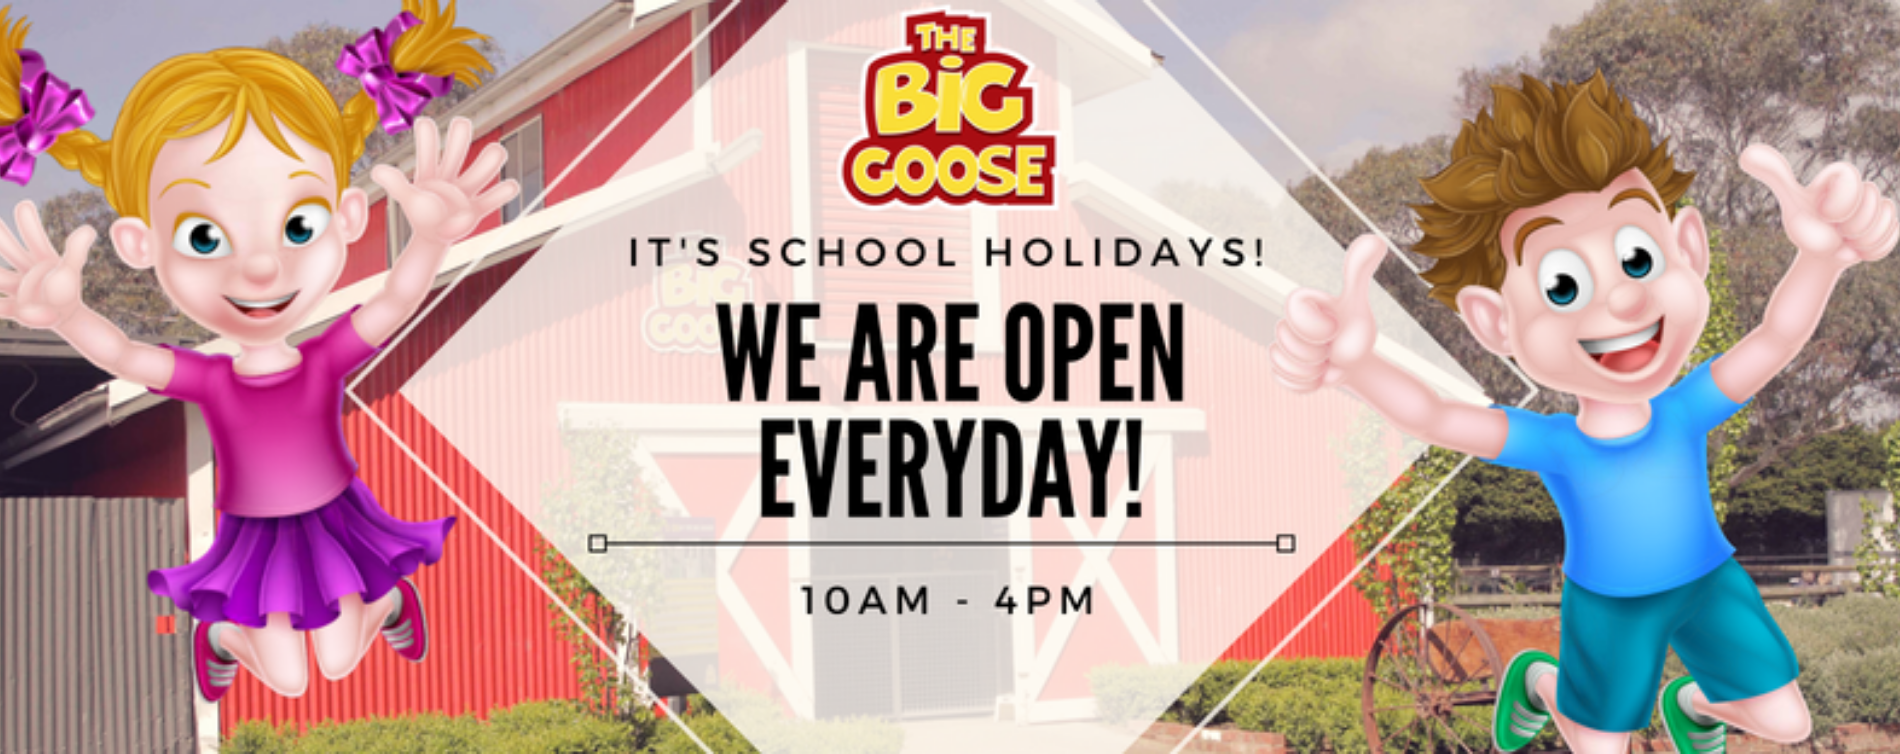 open every day1